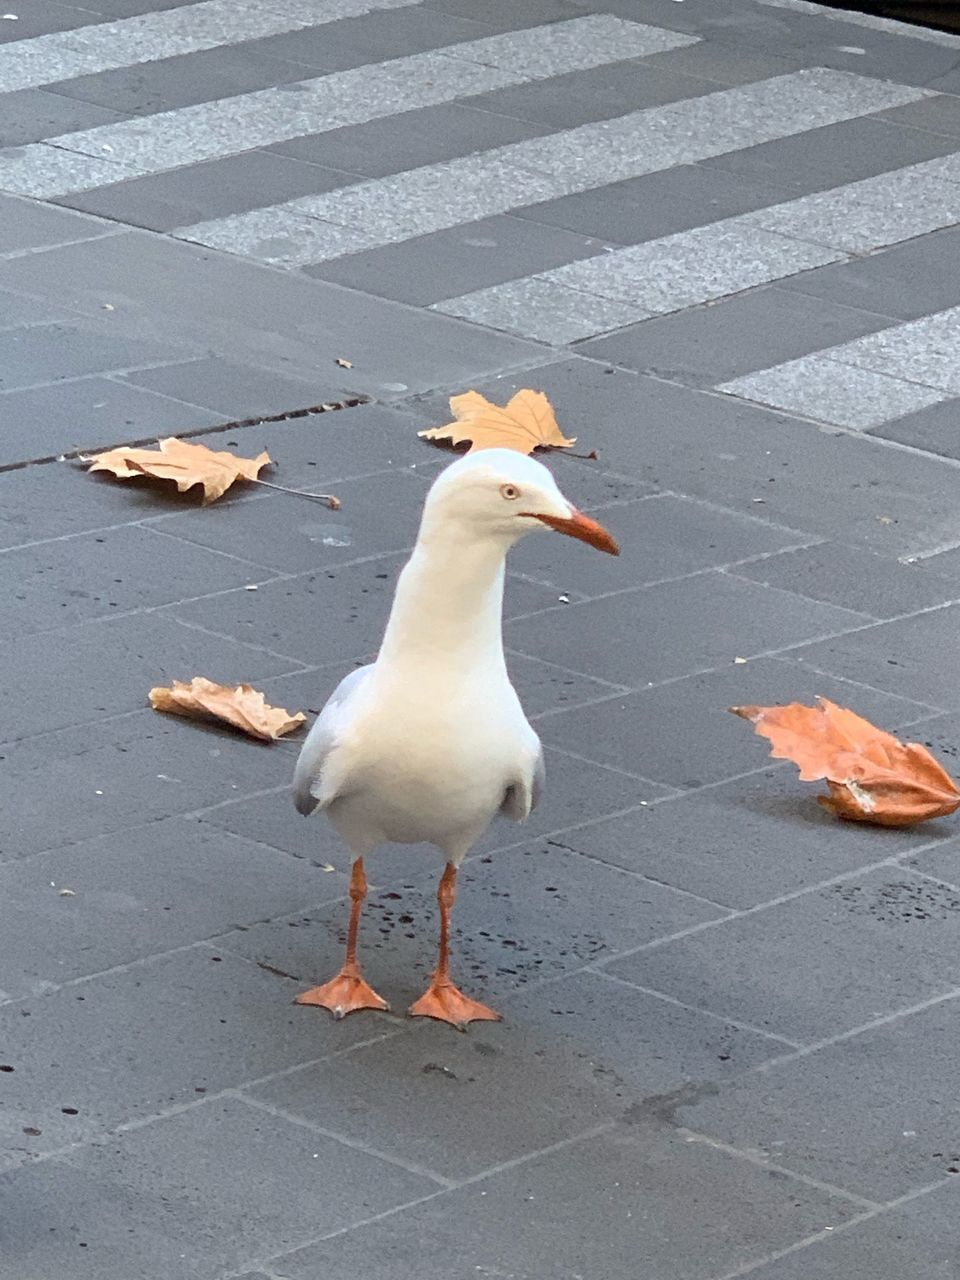 animal, bird, animal themes, vertebrate, day, high angle view, no people, one animal, footpath, animals in the wild, animal wildlife, outdoors, city, nature, street, pets, domestic, domestic animals, white color, mammal, seagull